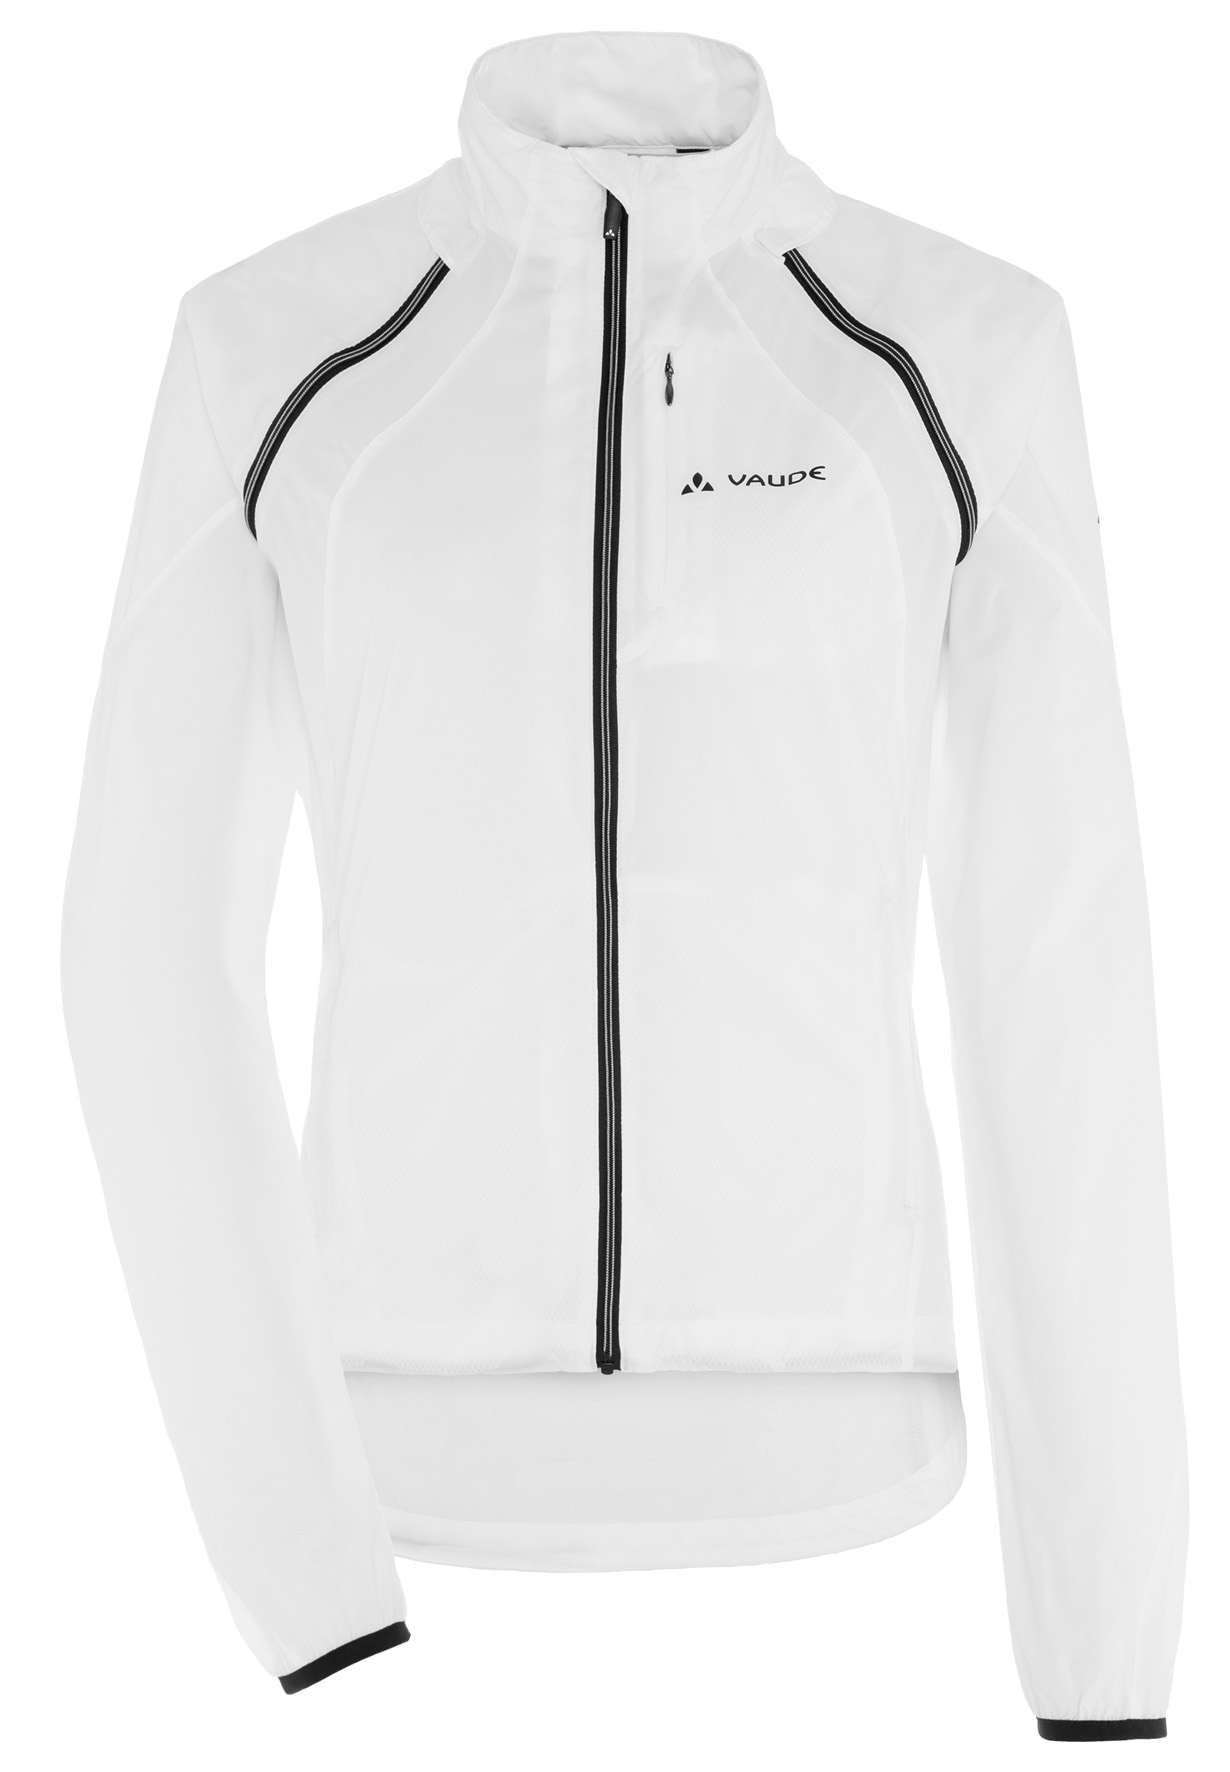 VAUDE Women´s Windoo Jacket white Größe 36 - schneider-sports